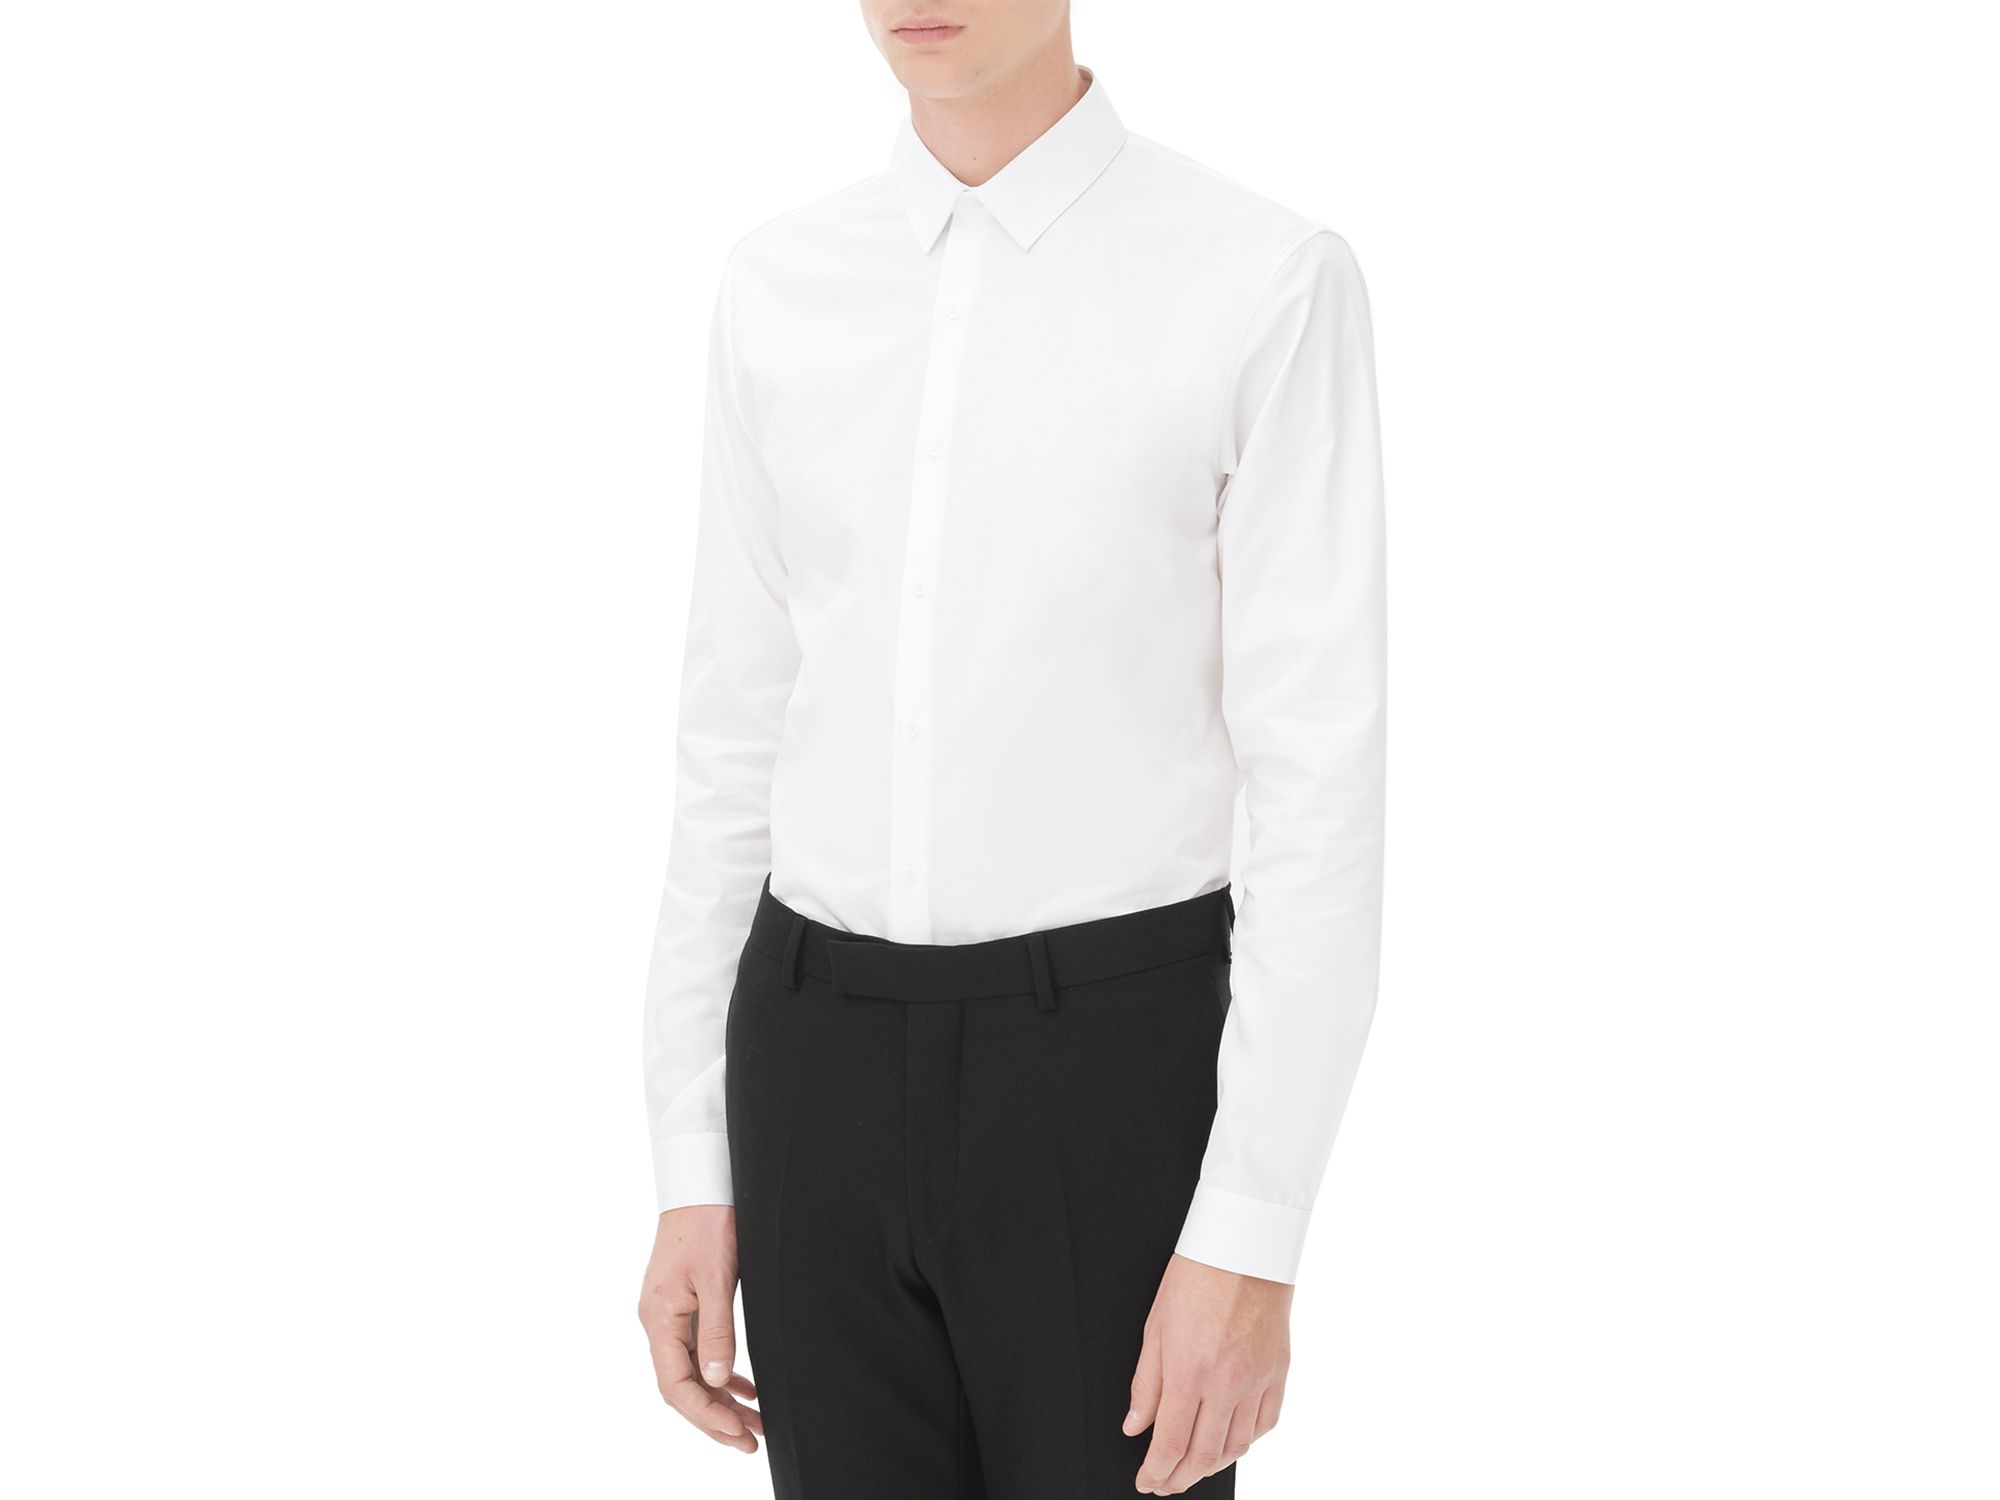 Sandro seamless slim fit button down shirt in white lyst for Slim fit white button down shirt